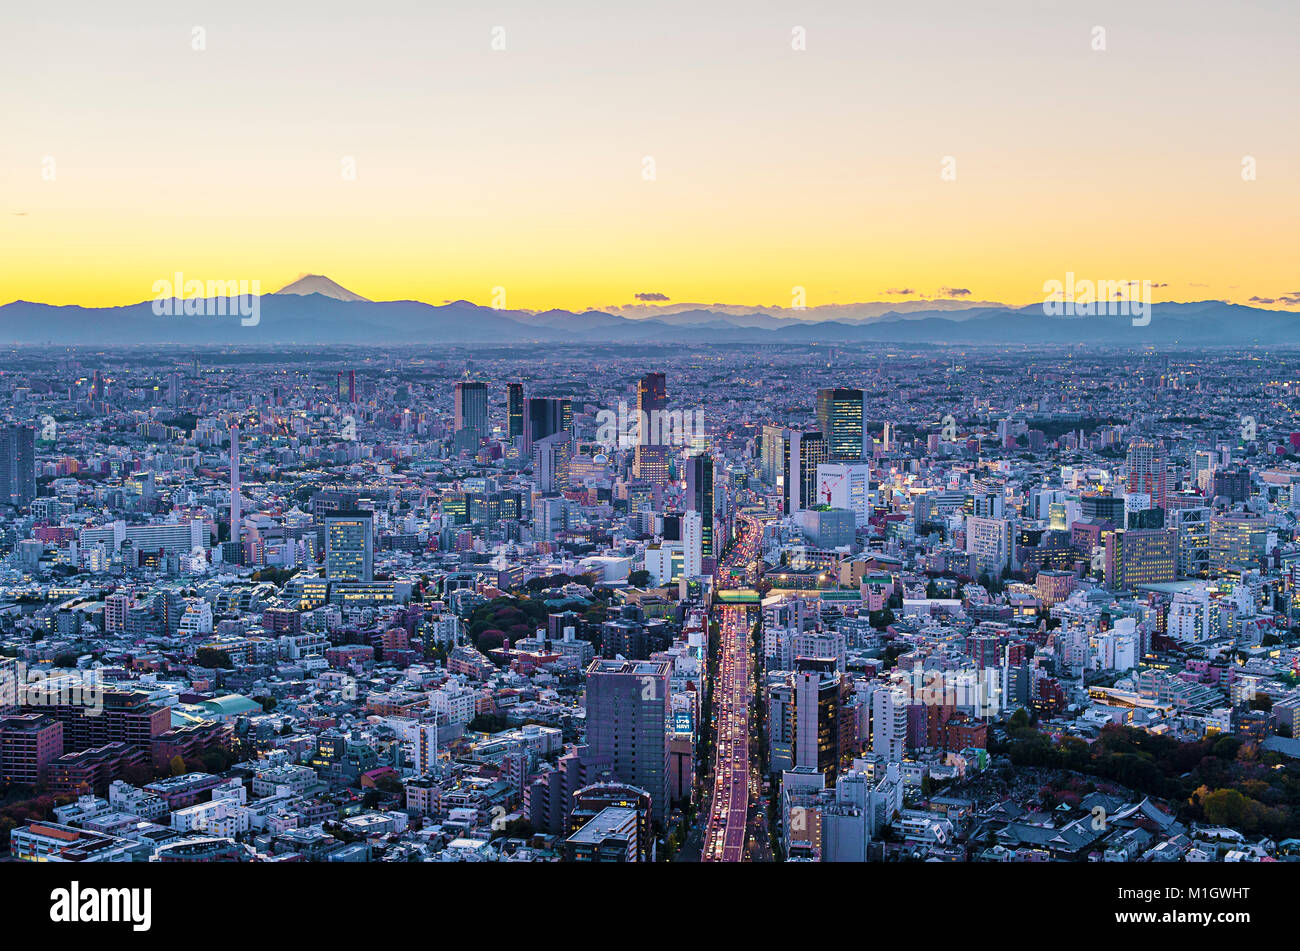 Aerial Cityscape View Tokyo Japan - Stock Image